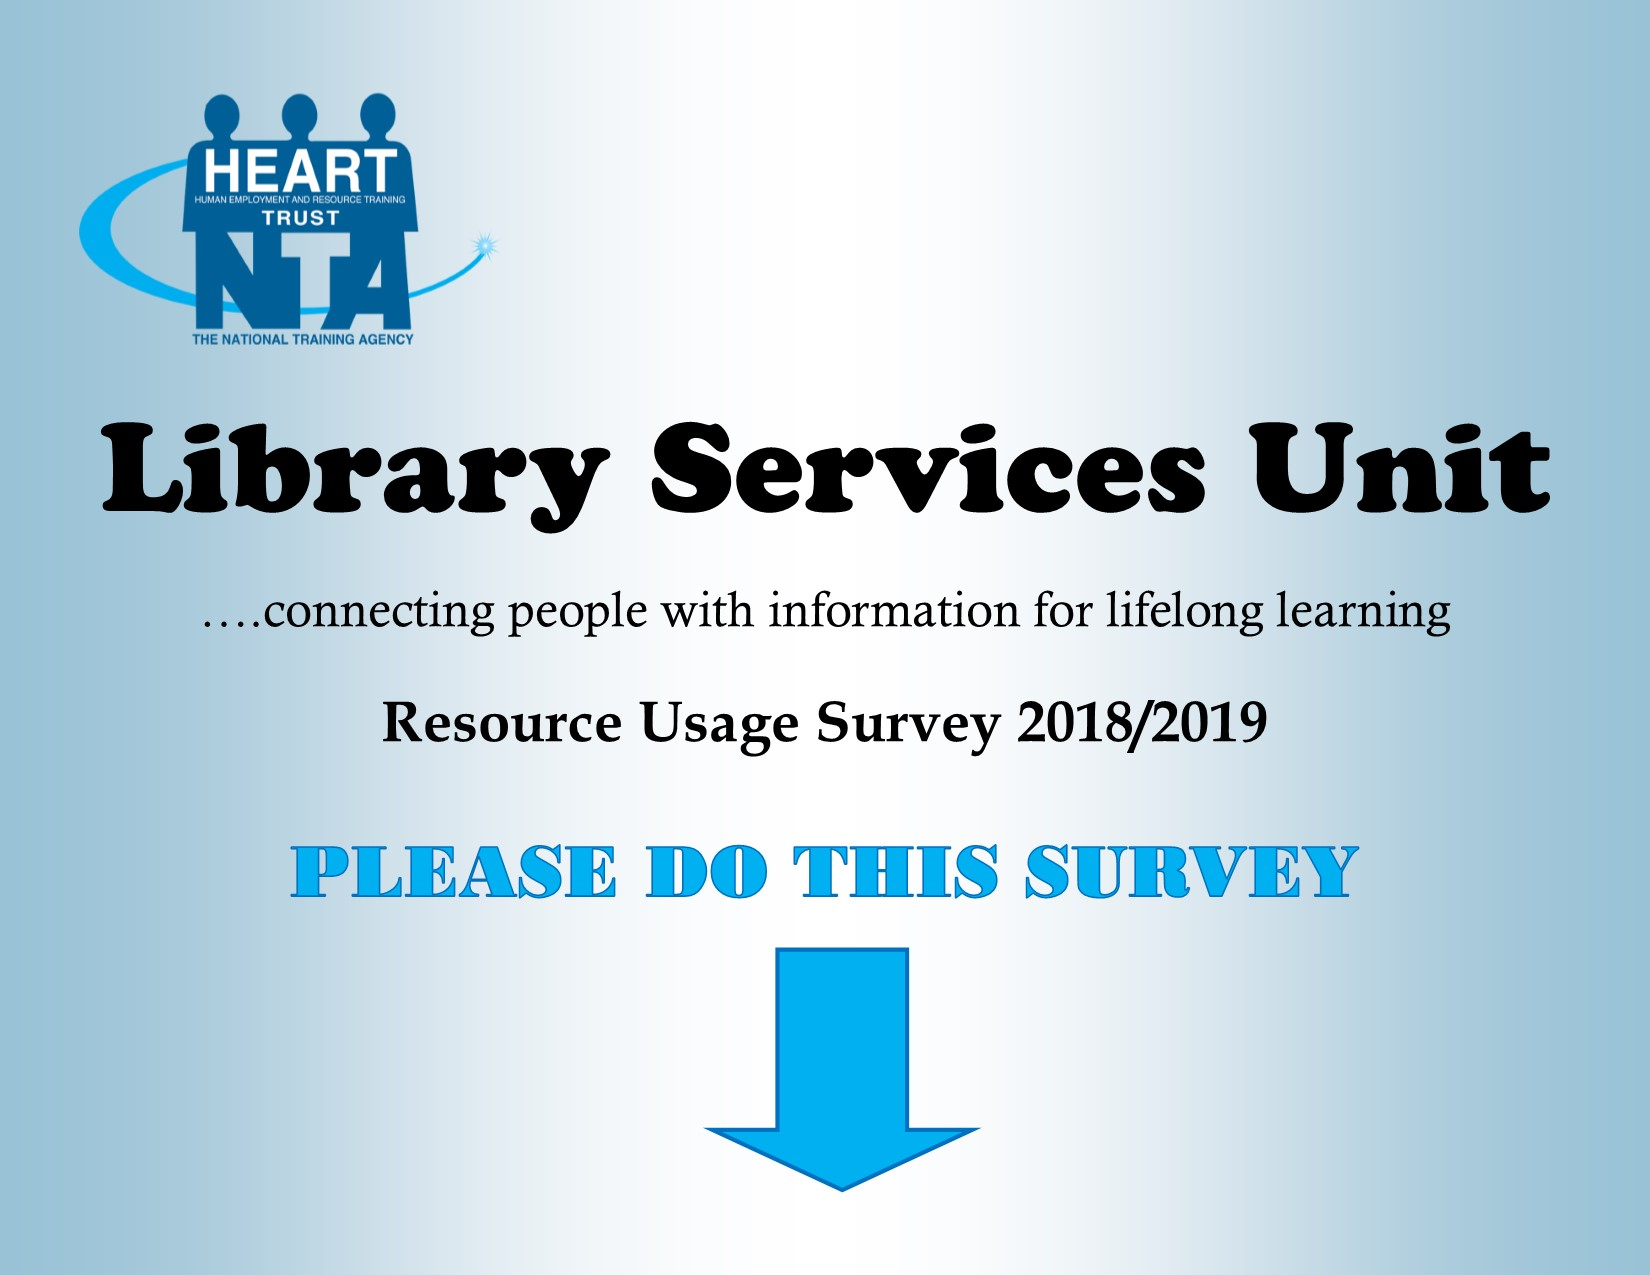 Library Services Unit Resources Usage Survey 2018-2019